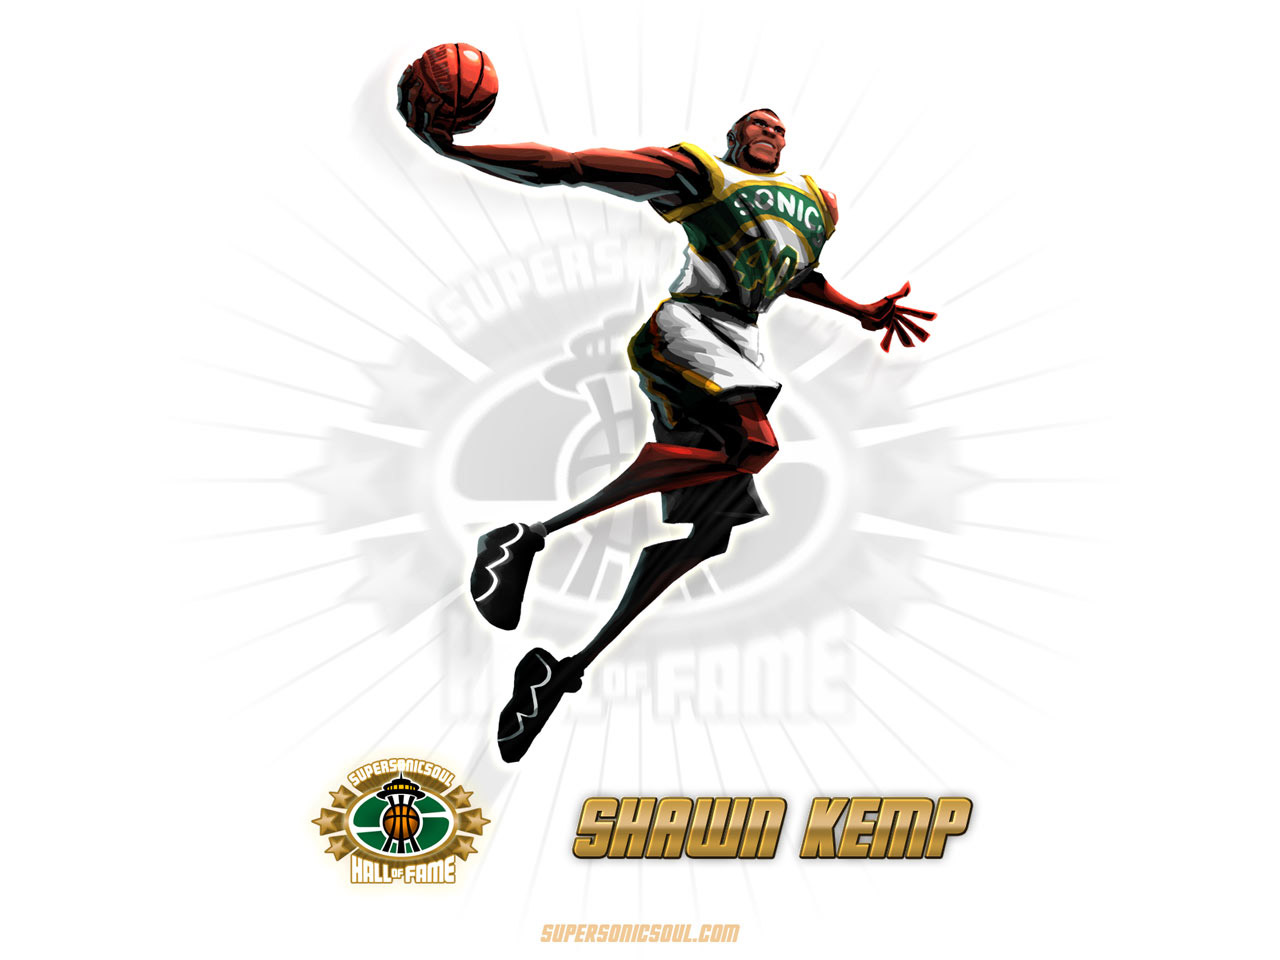 Shawn Kemp Drawn Wallpaper - Basketball Wallpapers